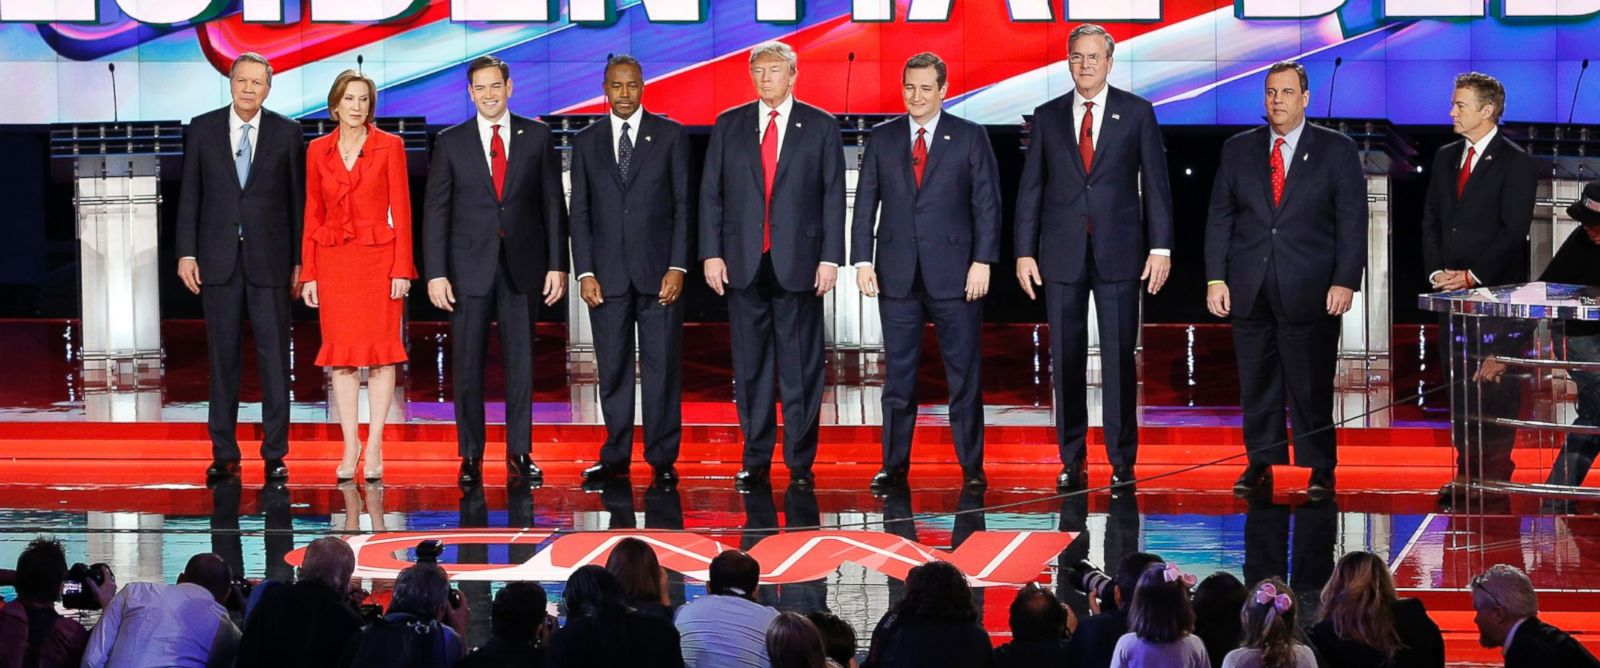 AP_gop_debate_group_2_jef_151215_12x5_1600.jpg